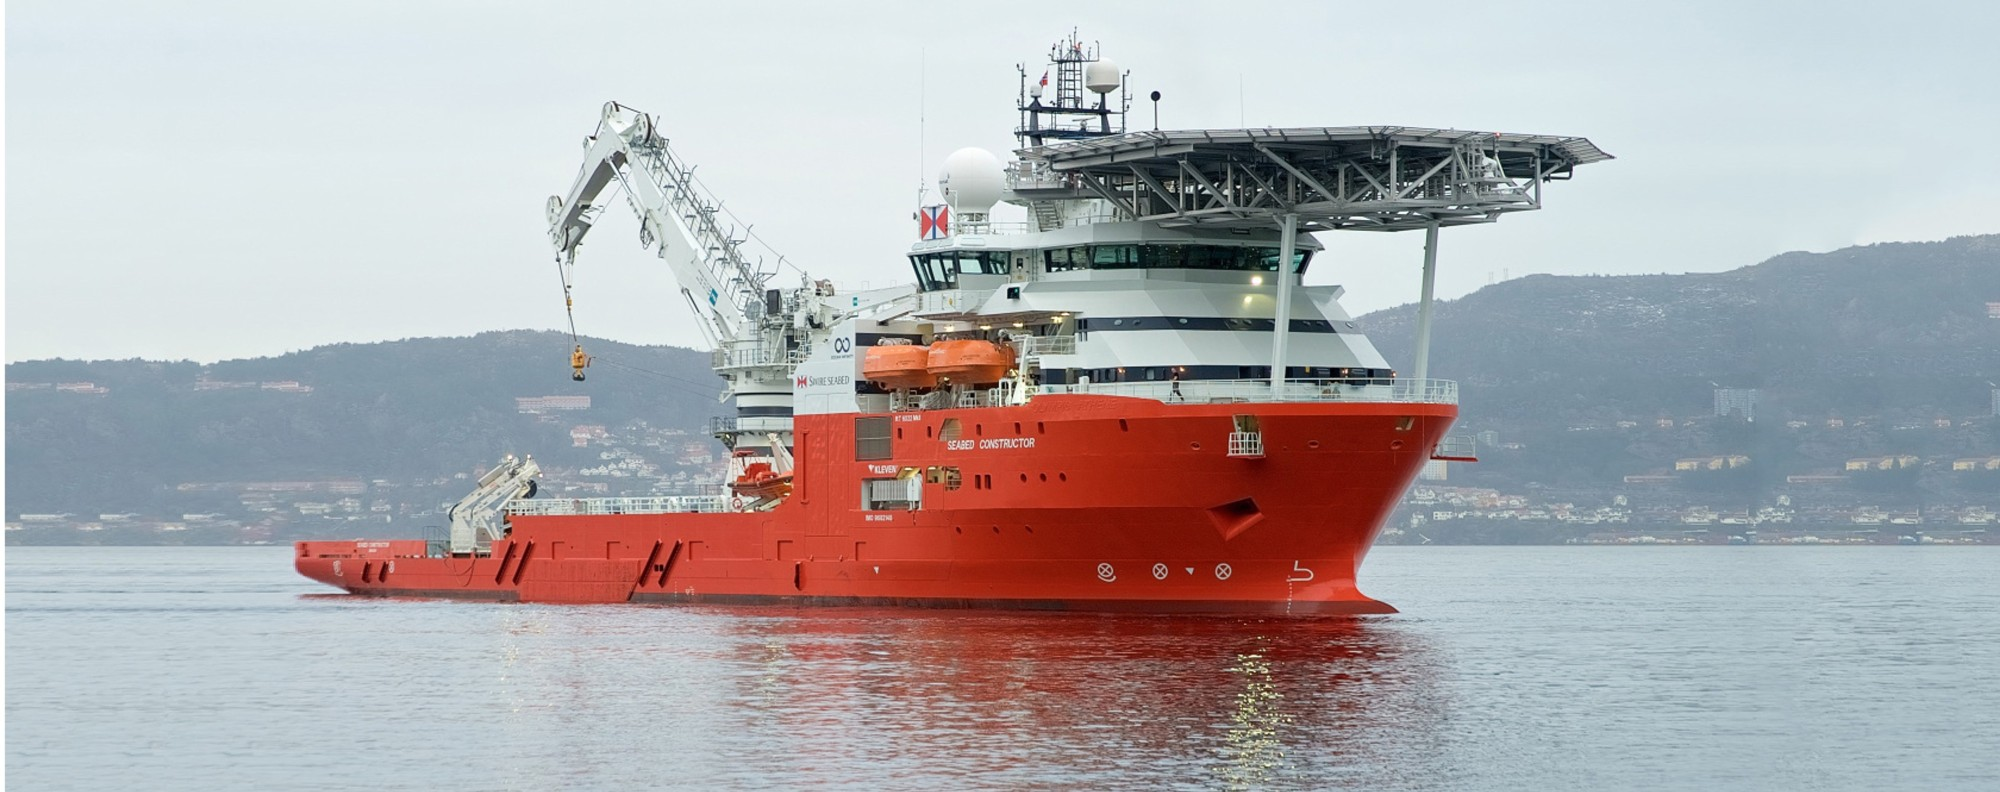 The Seabed Constructor is on the hunt for MH370. Picture: Swire